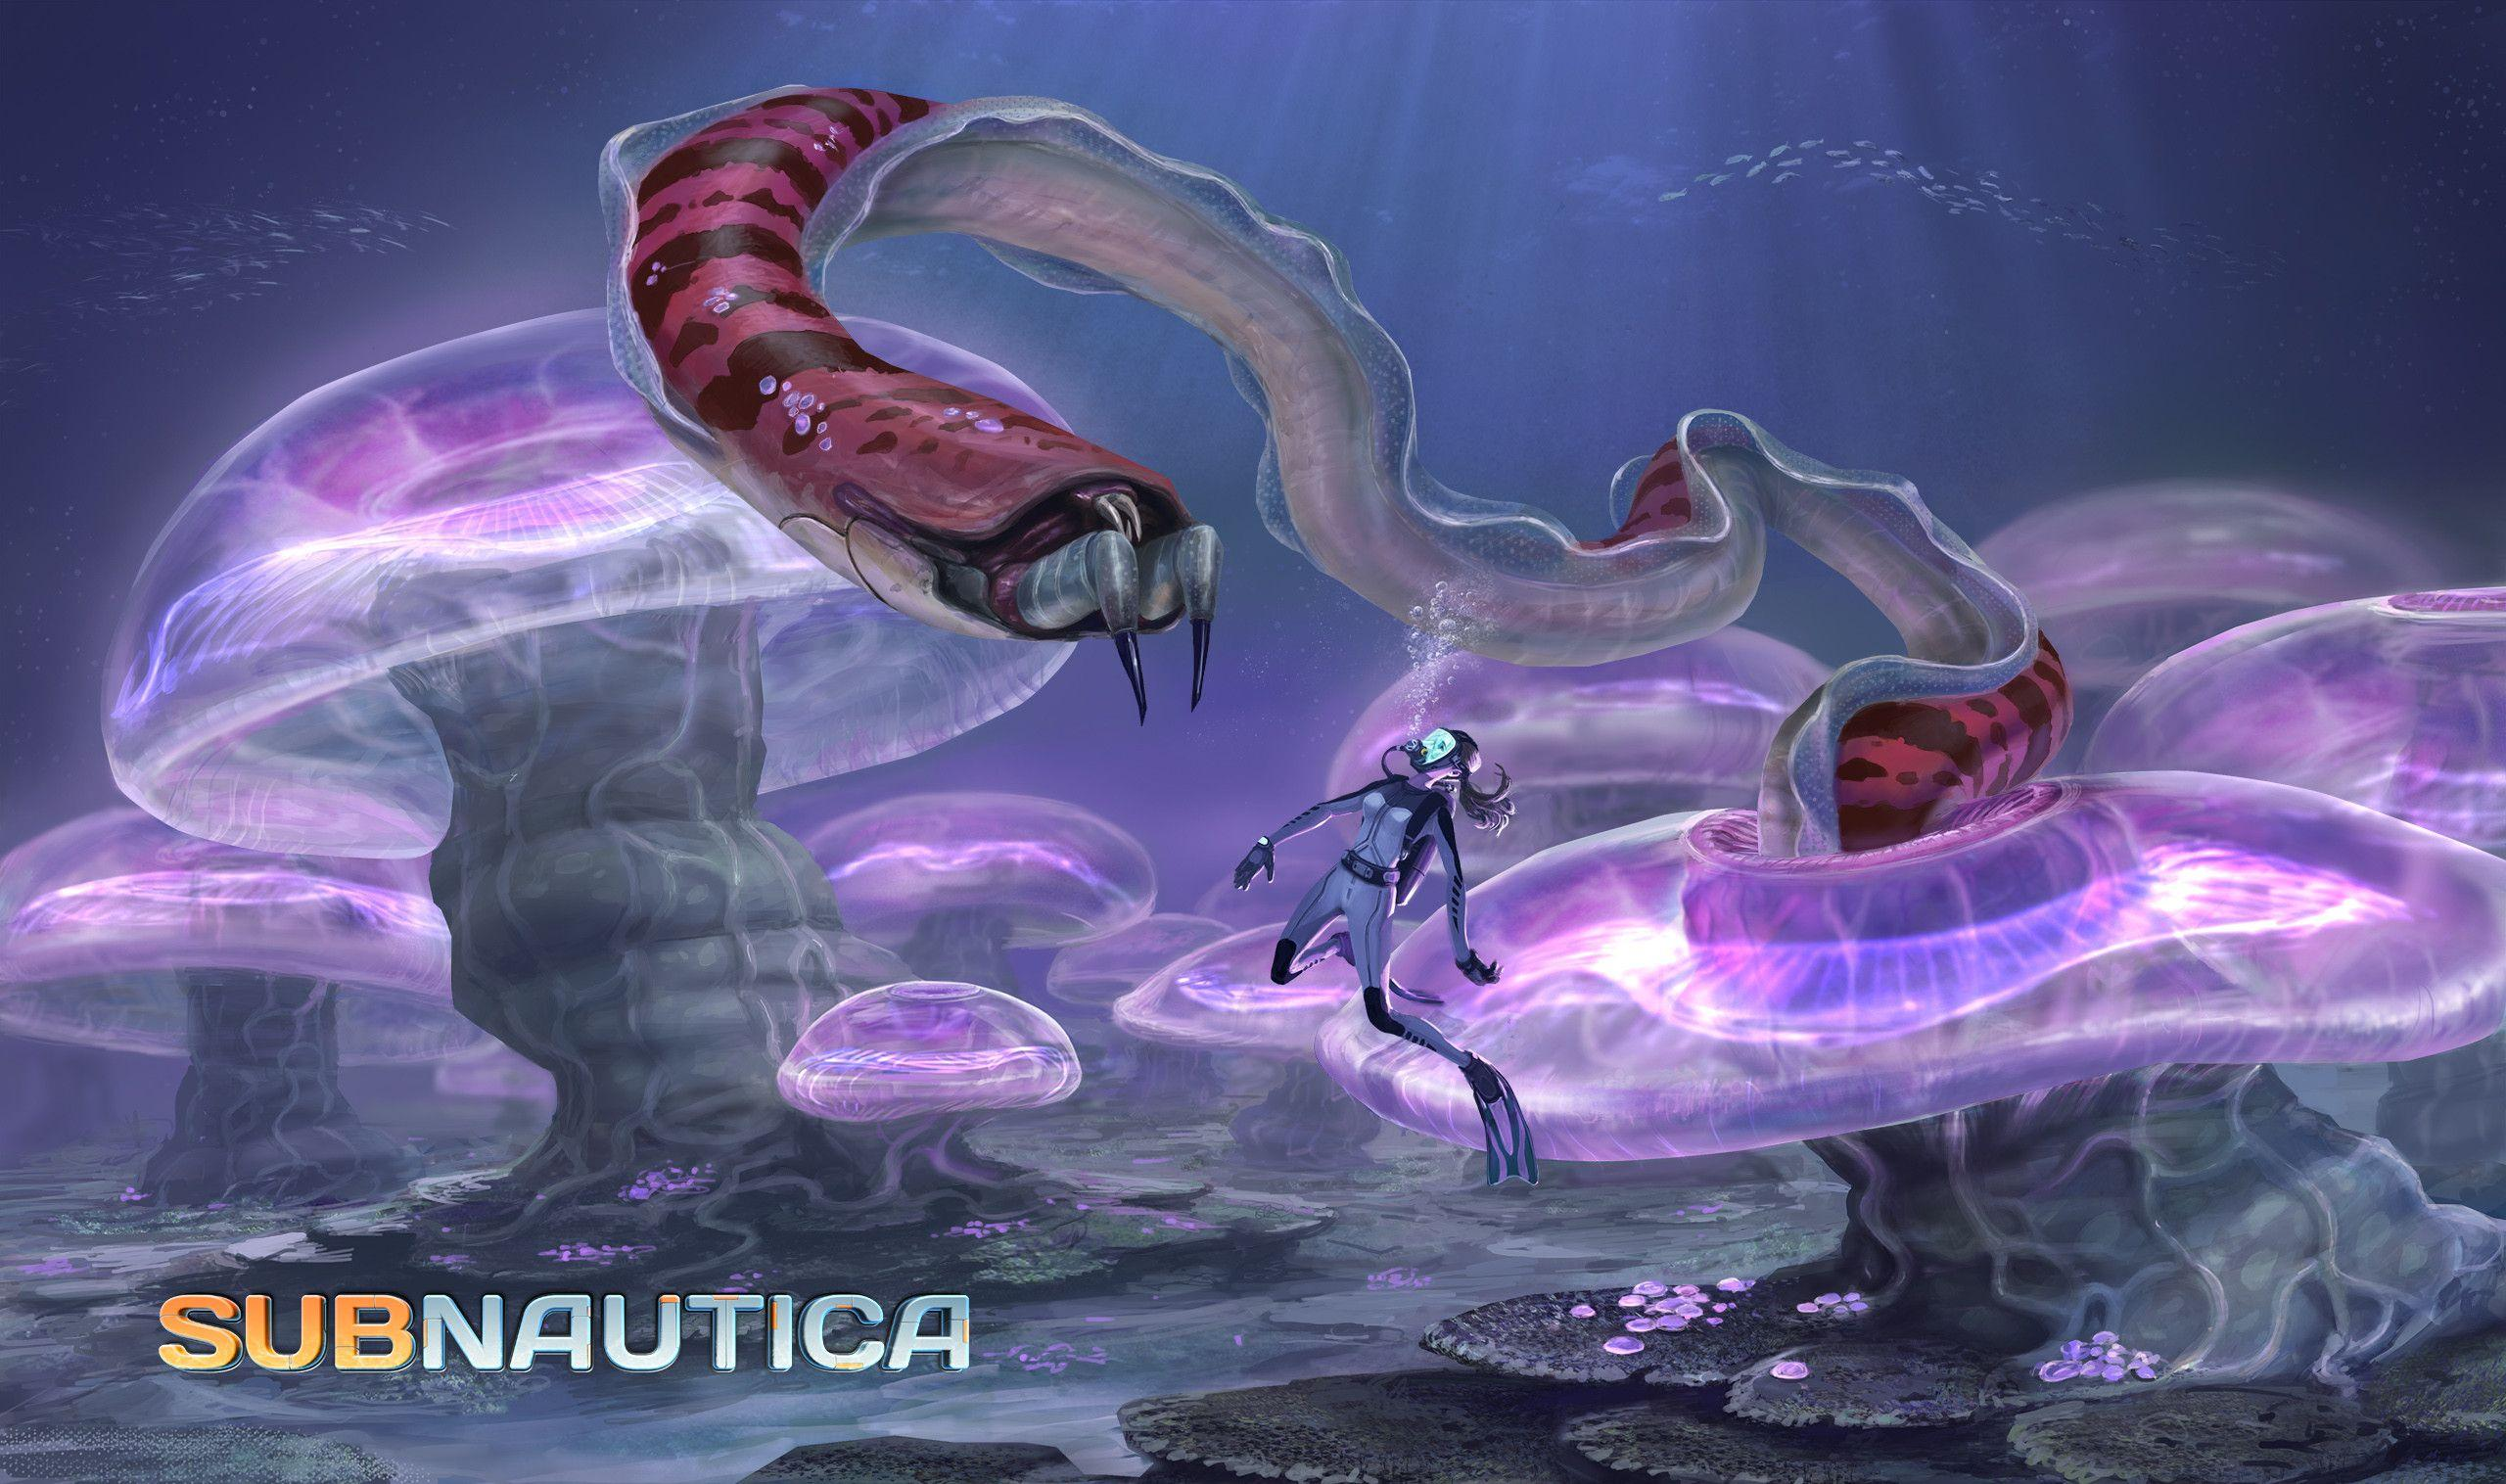 Subnautica Wallpapers, Pictures, Image